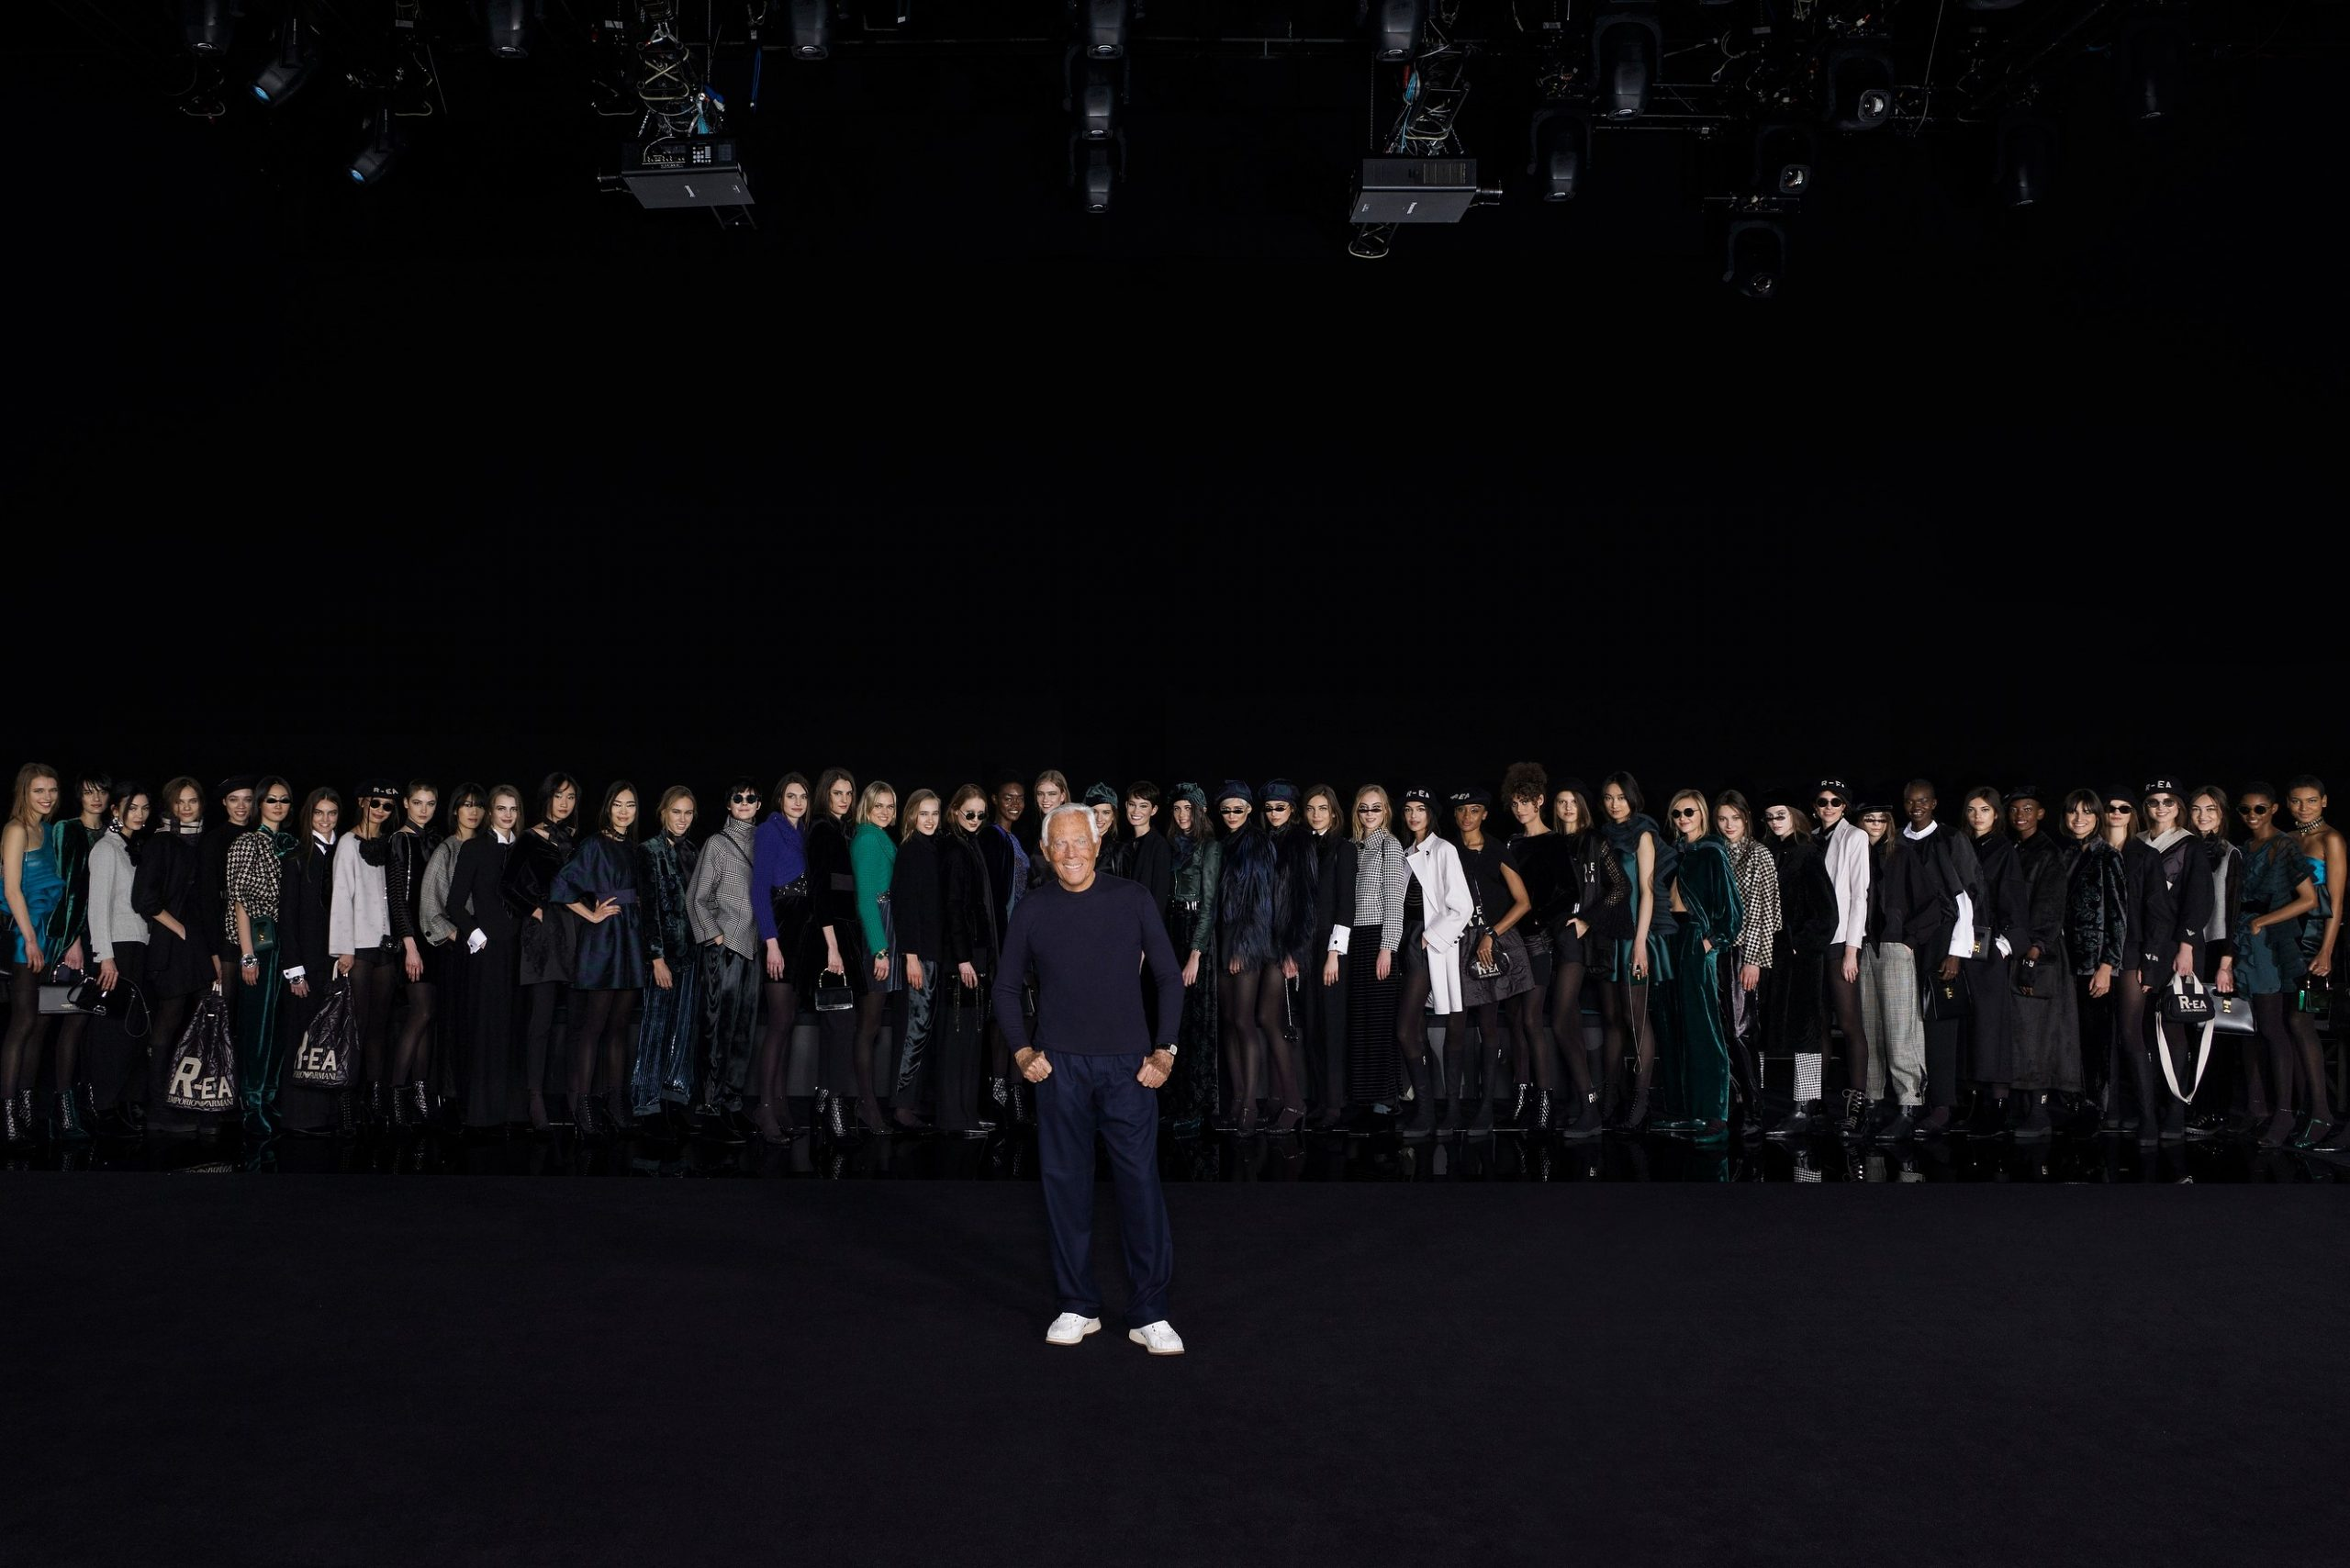 Giorgio Armani to hold fashion shows without guests